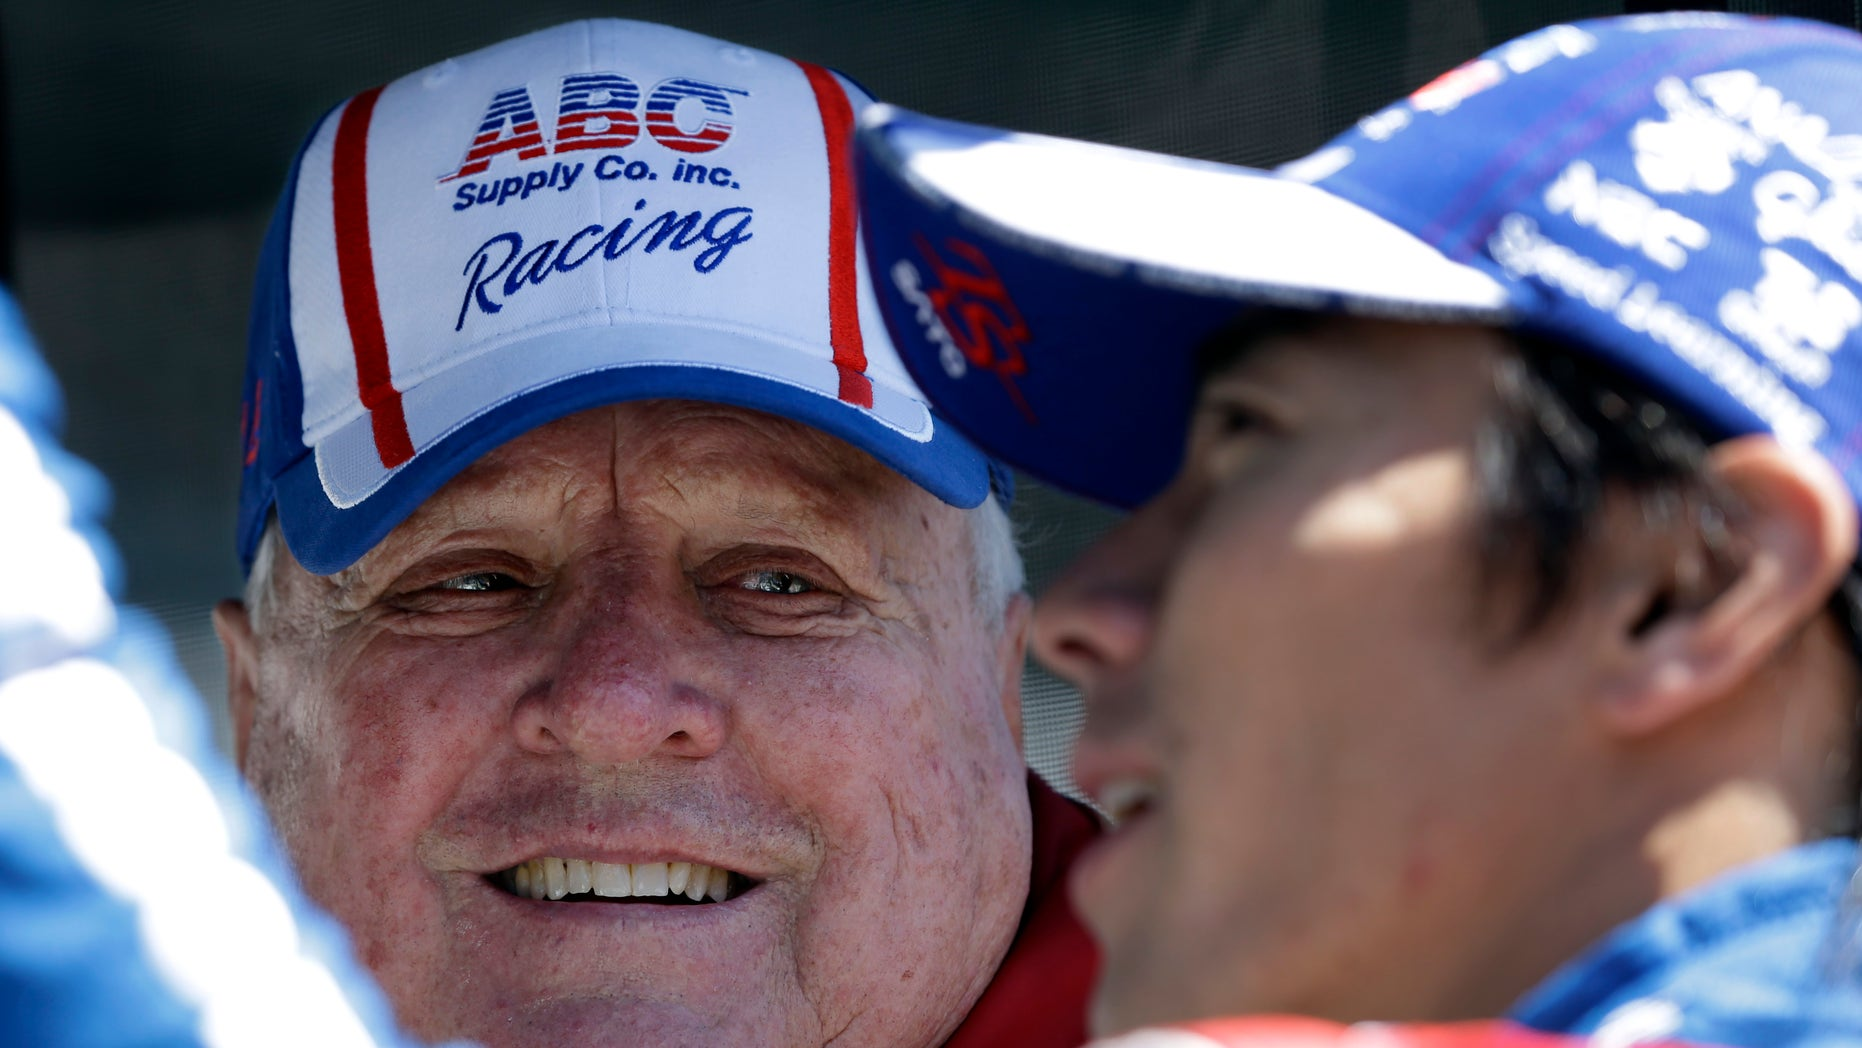 Car owner A.J. Foyt talks with driver Takuma Sato, of Japan, during practice for the Indianapolis 500 auto race at the Indianapolis Motor Speedway in Indianapolis, Monday, May 13, 2013. (AP Photo/Darron Cummings)